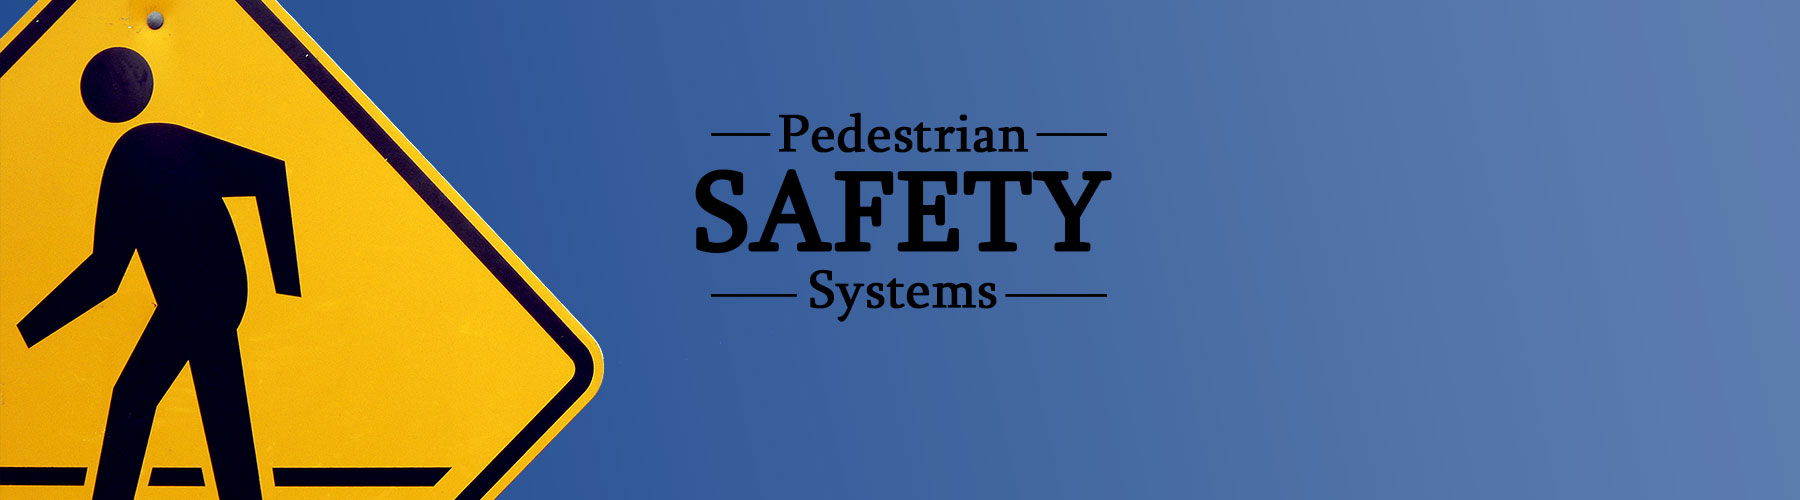 pedestrian-safety-systems